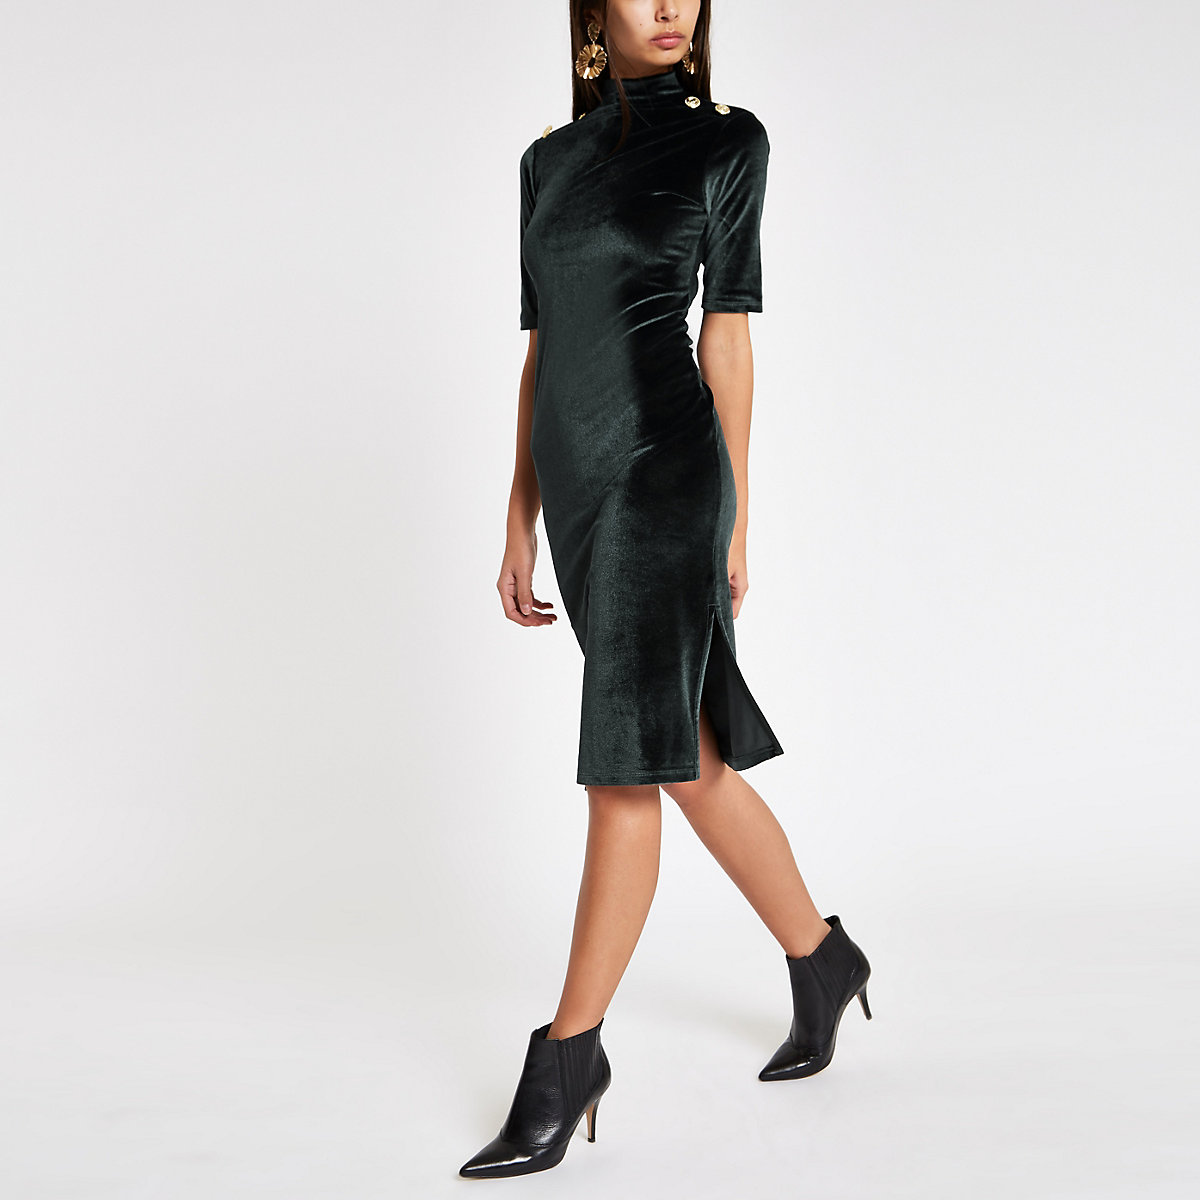 Green velvet high neck bodycon dress